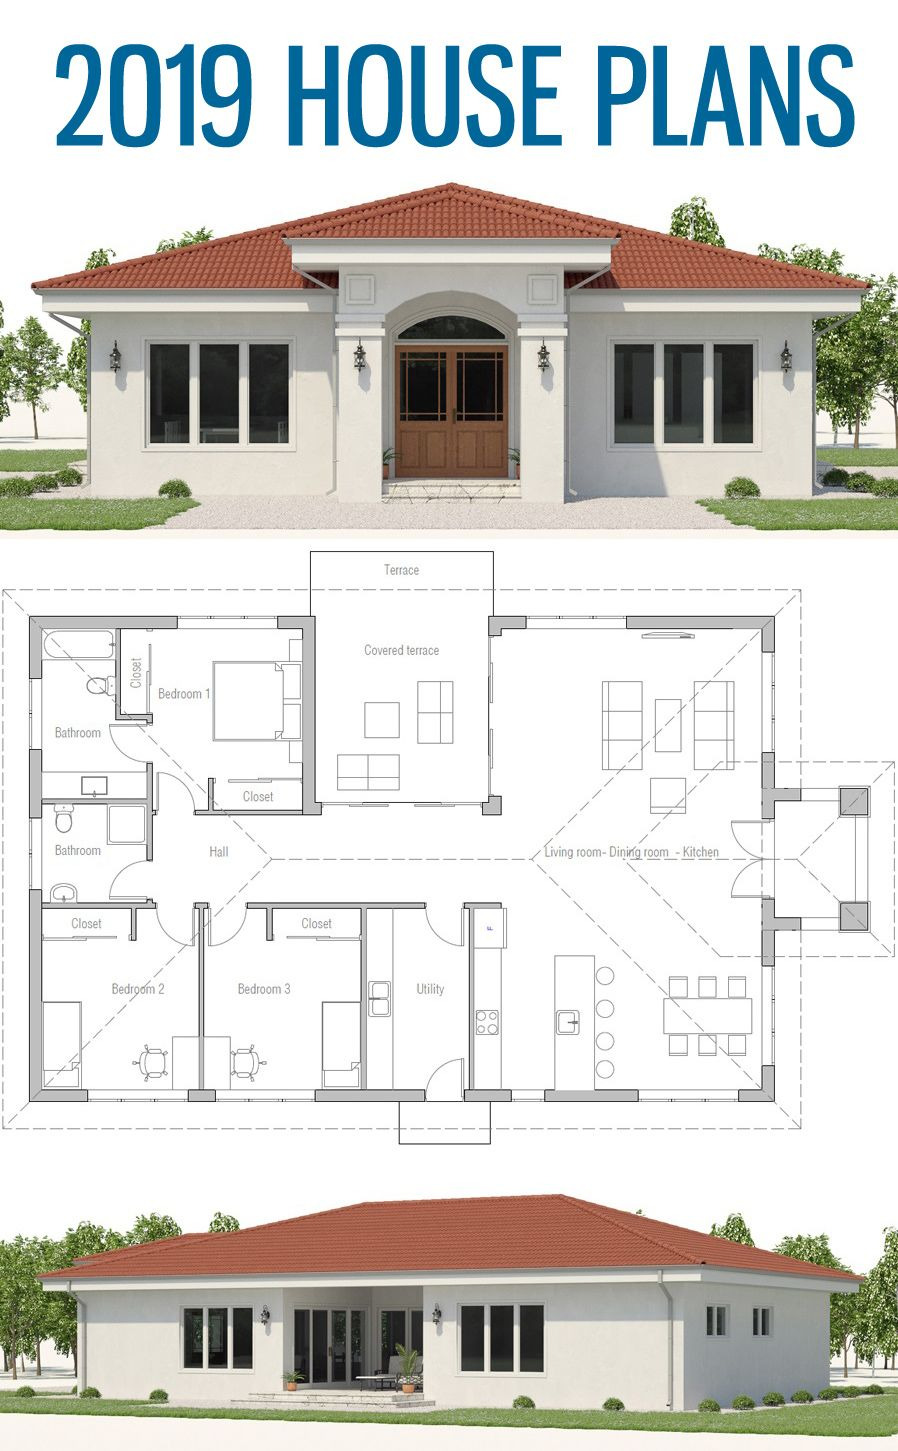 Contemporary House Plans Single Story Inspirational House Plans Single Strory Home Plan House Plans 2019